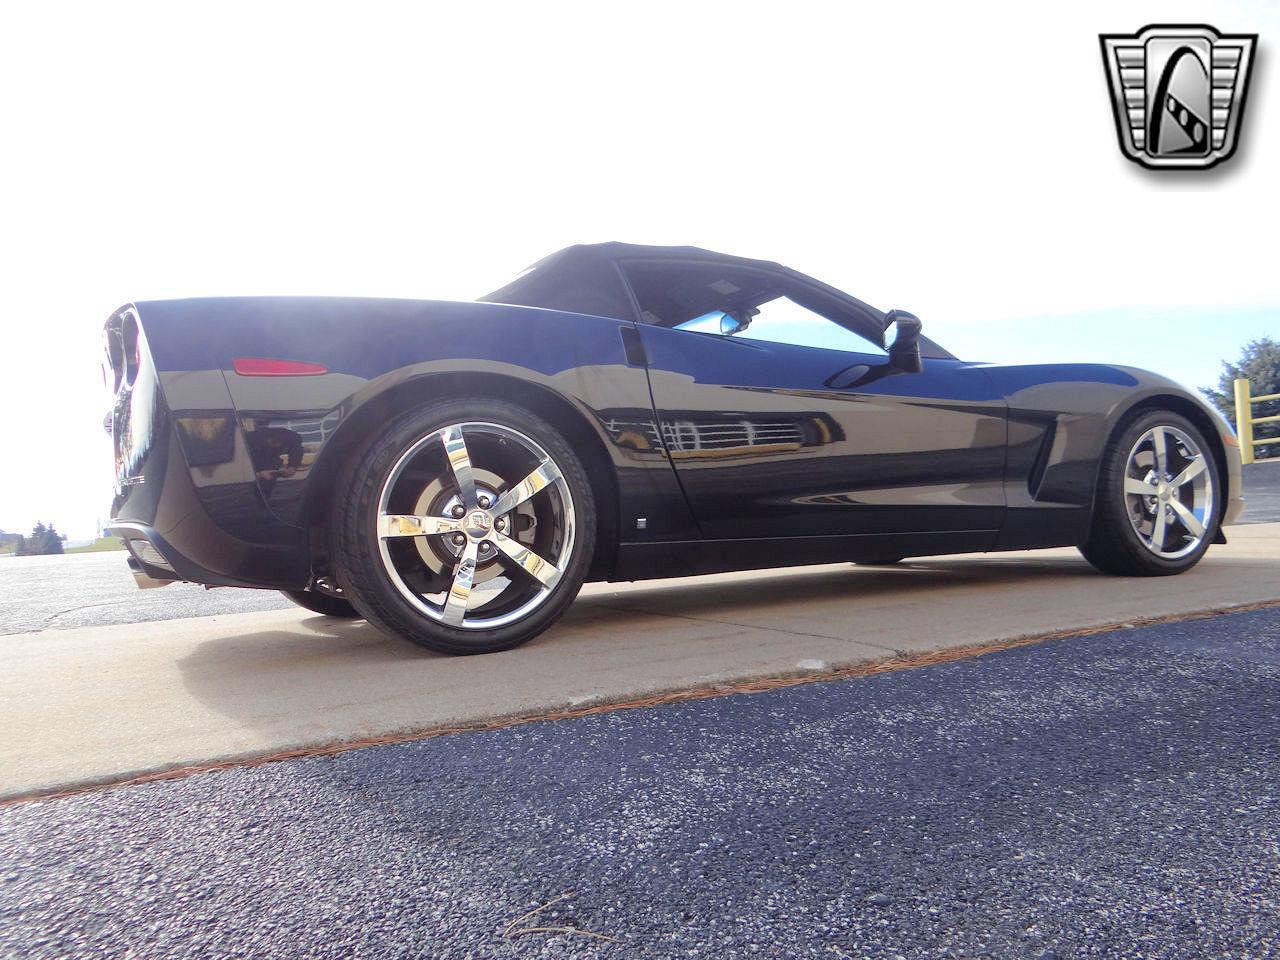 2009 Chevrolet Corvette (CC-1340867) for sale in O'Fallon, Illinois